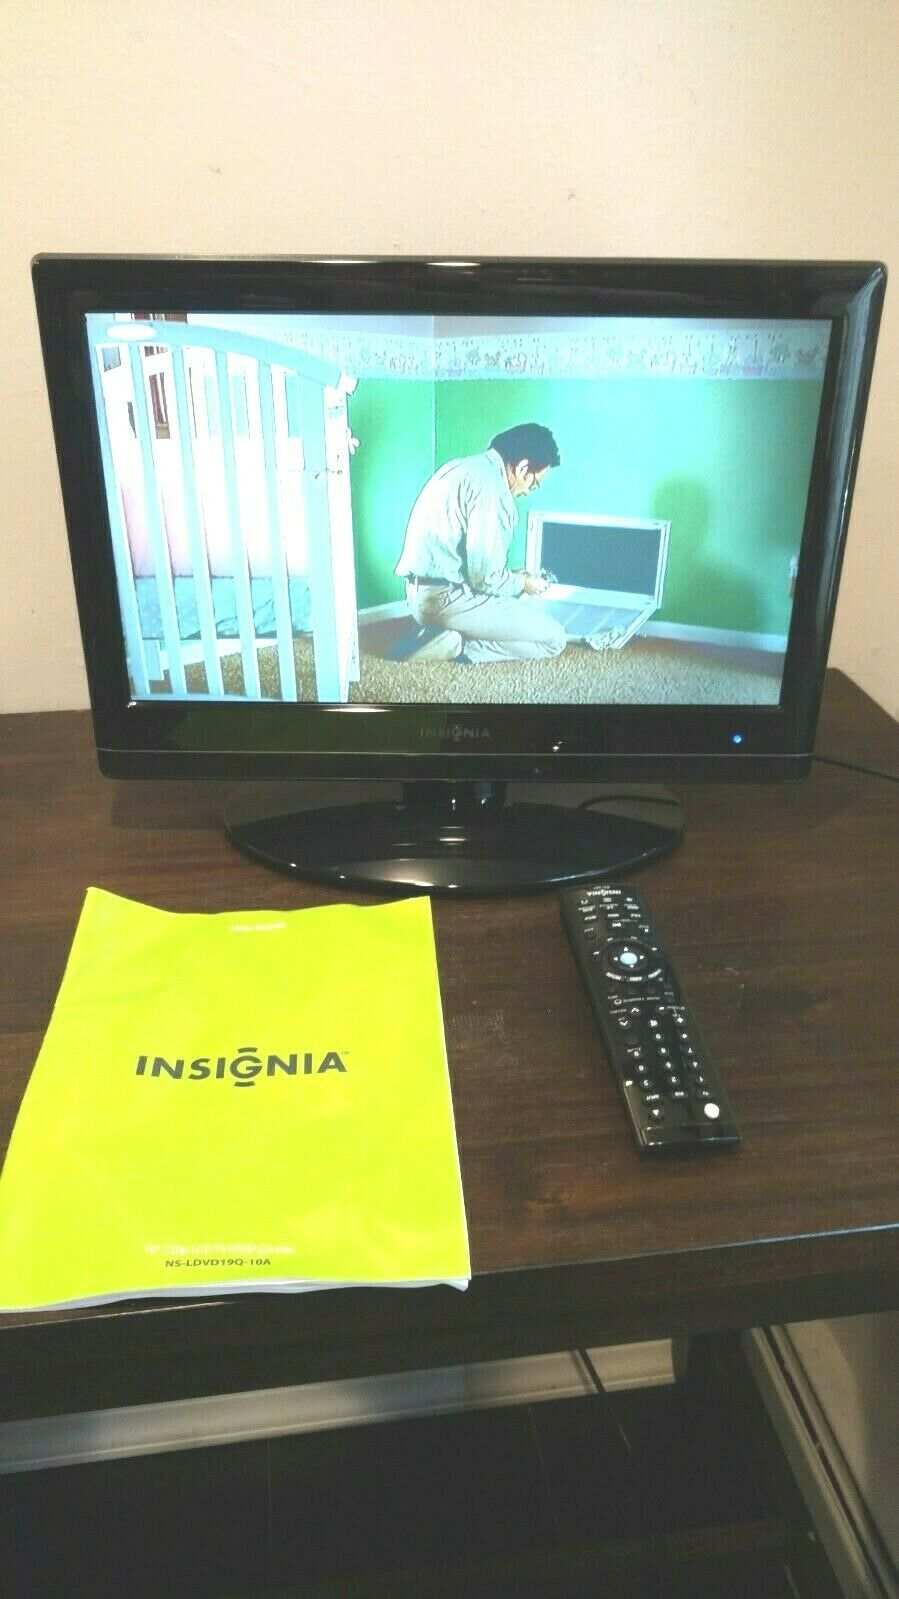 "Insignia NS-LDVD19Q-10A LCD 19"" COLOR TV/DVD Combo w/ Remote Control and Manual"